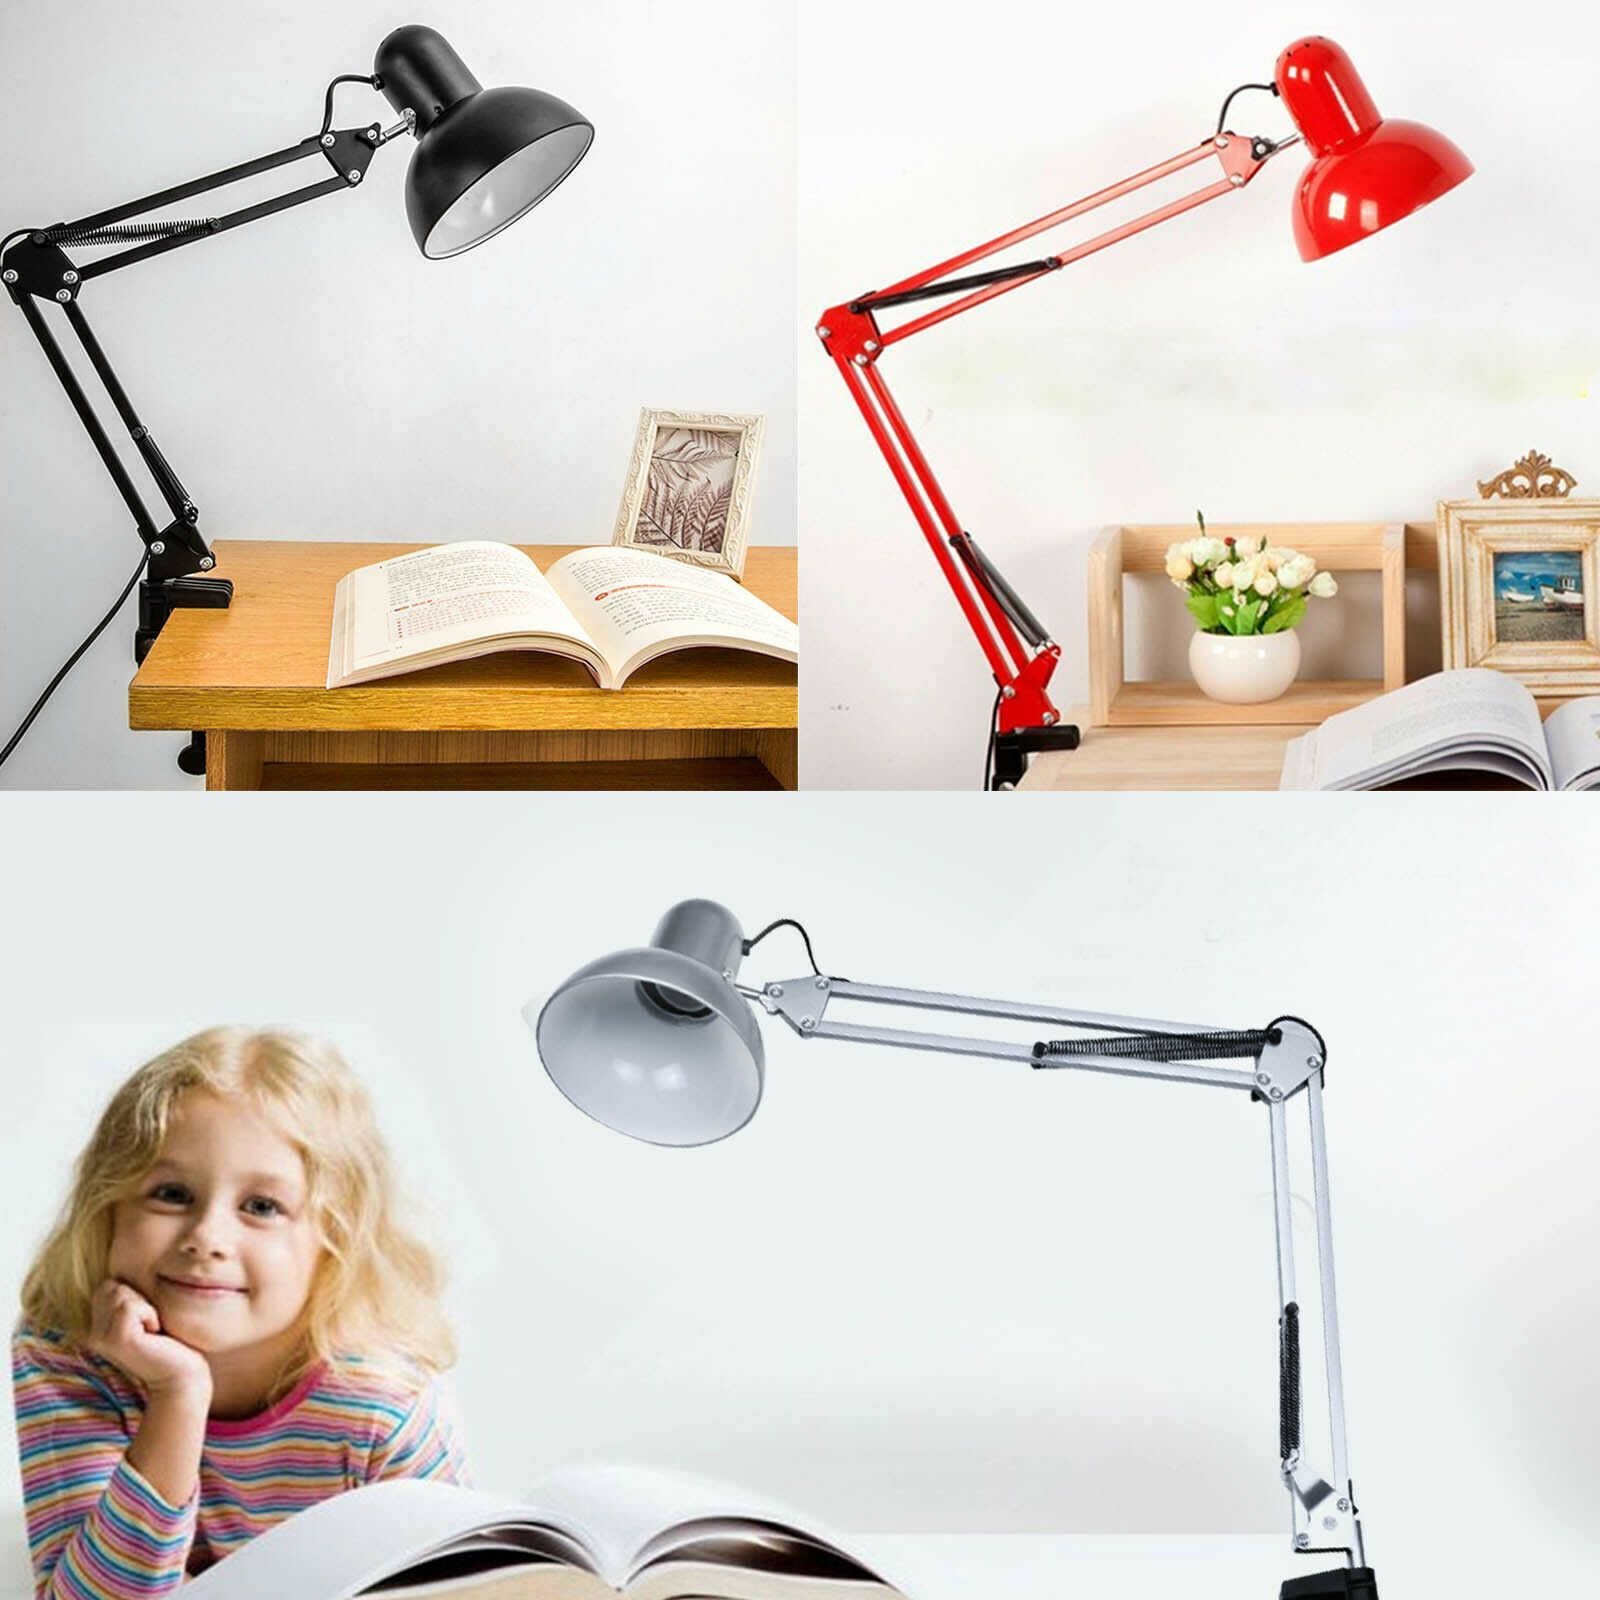 0220v Arm Clamp Desk Flexible Home Lamp Led Light Mount Office Swing Table 0220v Flexible Table Led Desk Lamp S Led Desk Lamp Clamp Lamp Desk Lamp